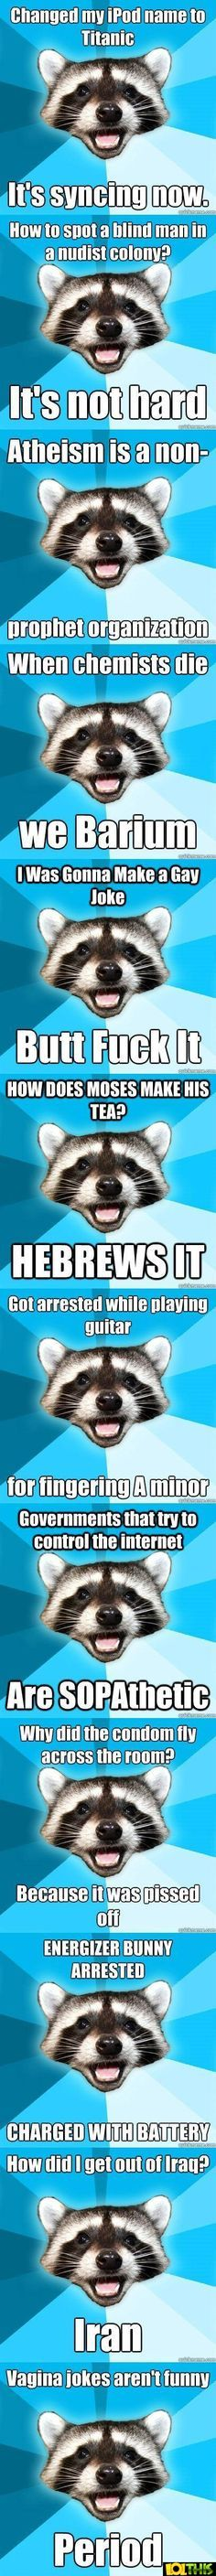 The cheesy joke raccoon loves to tell cheesy jokes This is a funny collection of pictures of a raccoon meme who says funny jokes